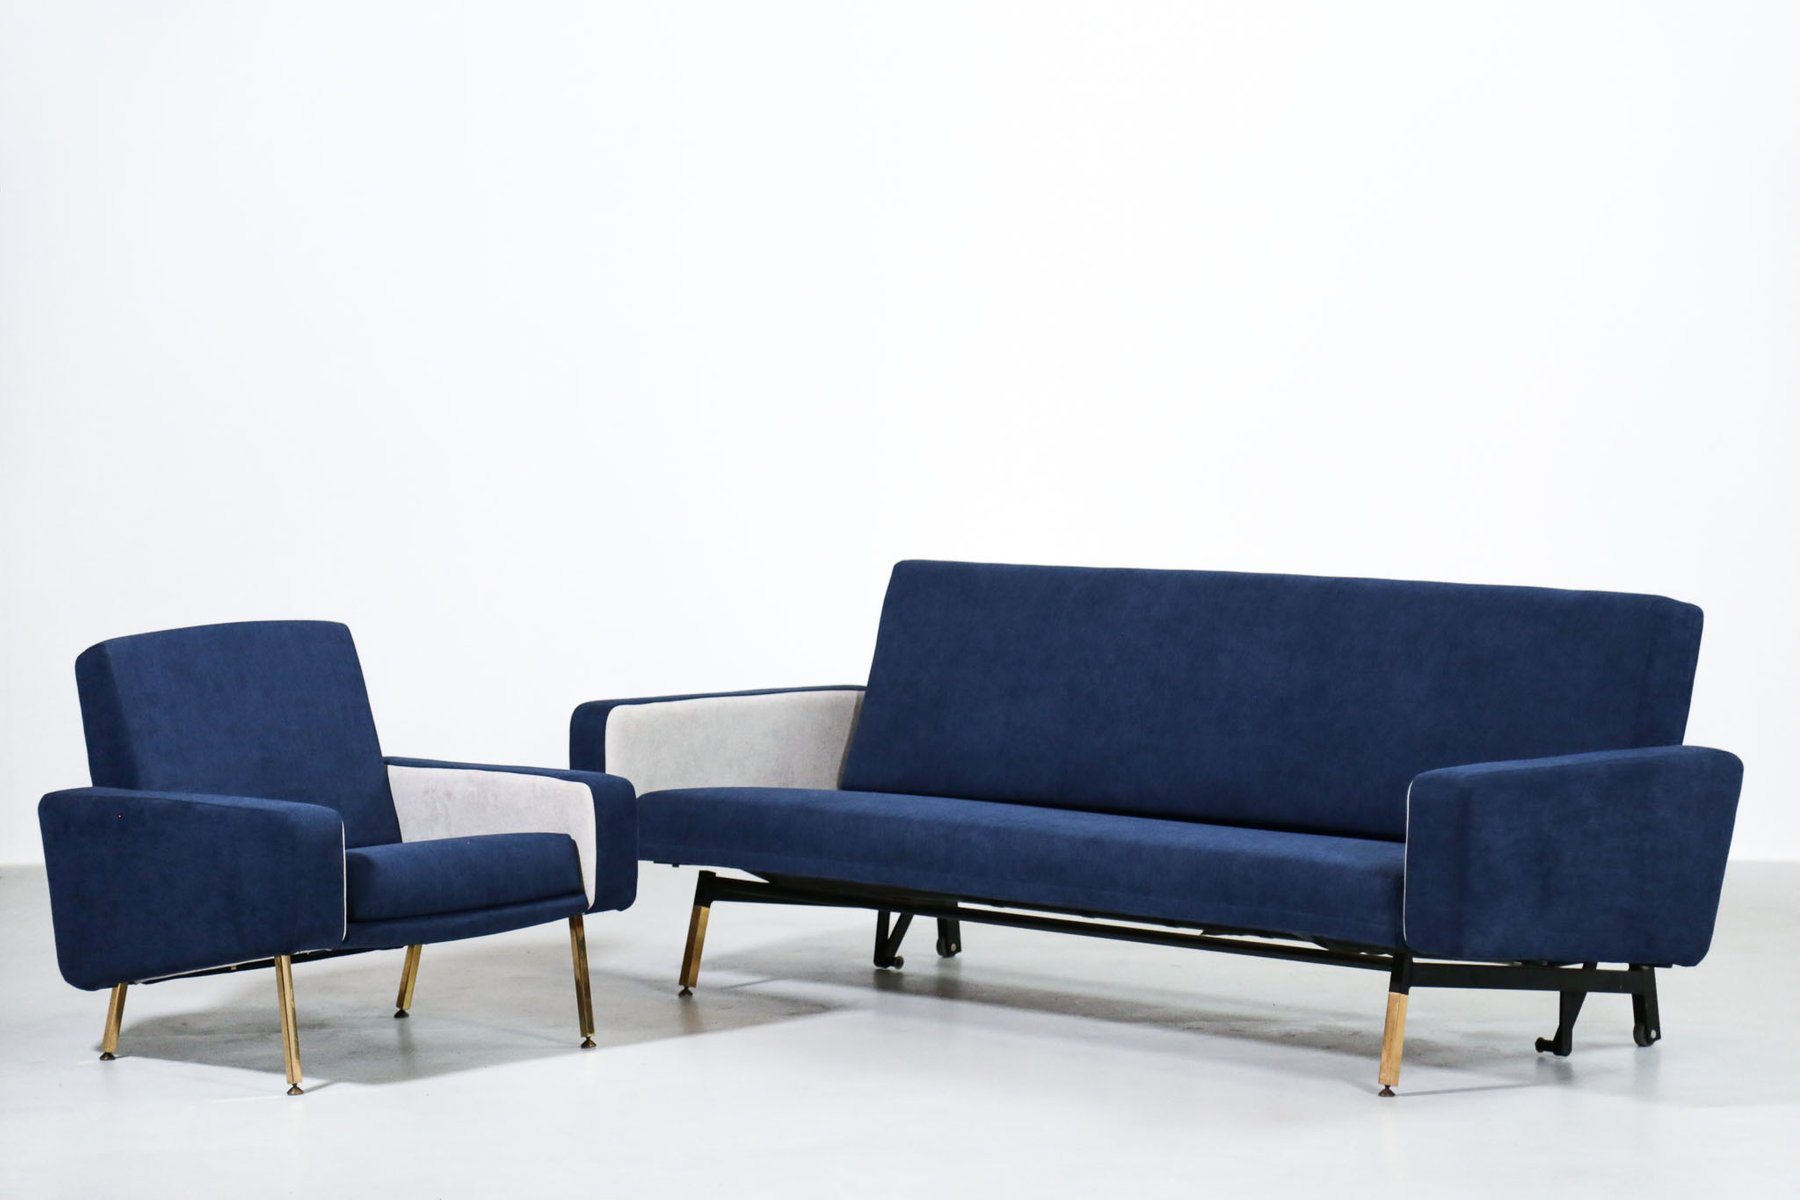 Vintage French Sofa Bed By Pierre Guariche For Airborne